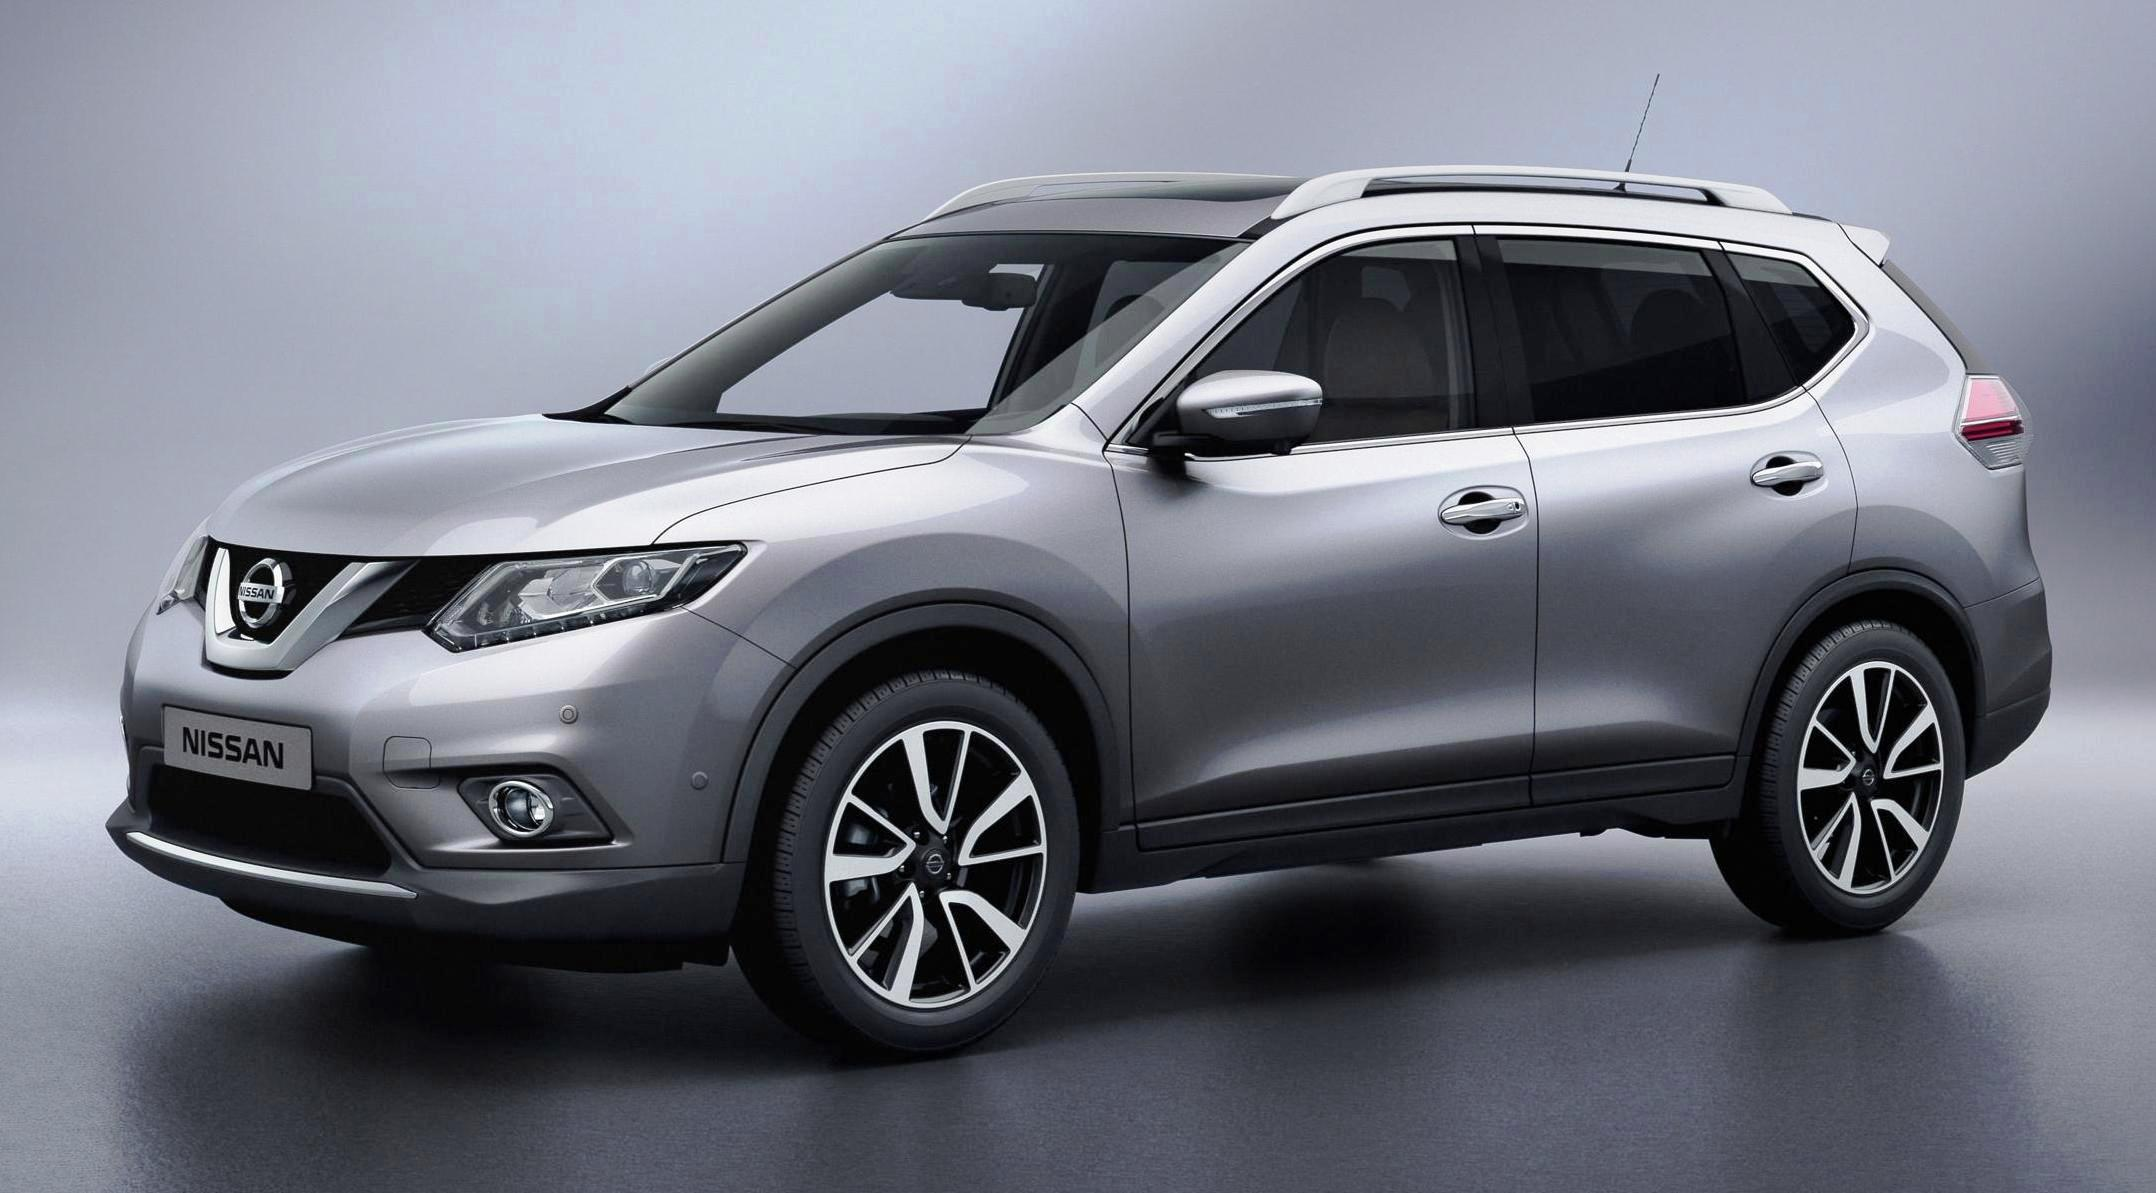 2016 Nissan X-trail 2 – pictures, information and specs ...